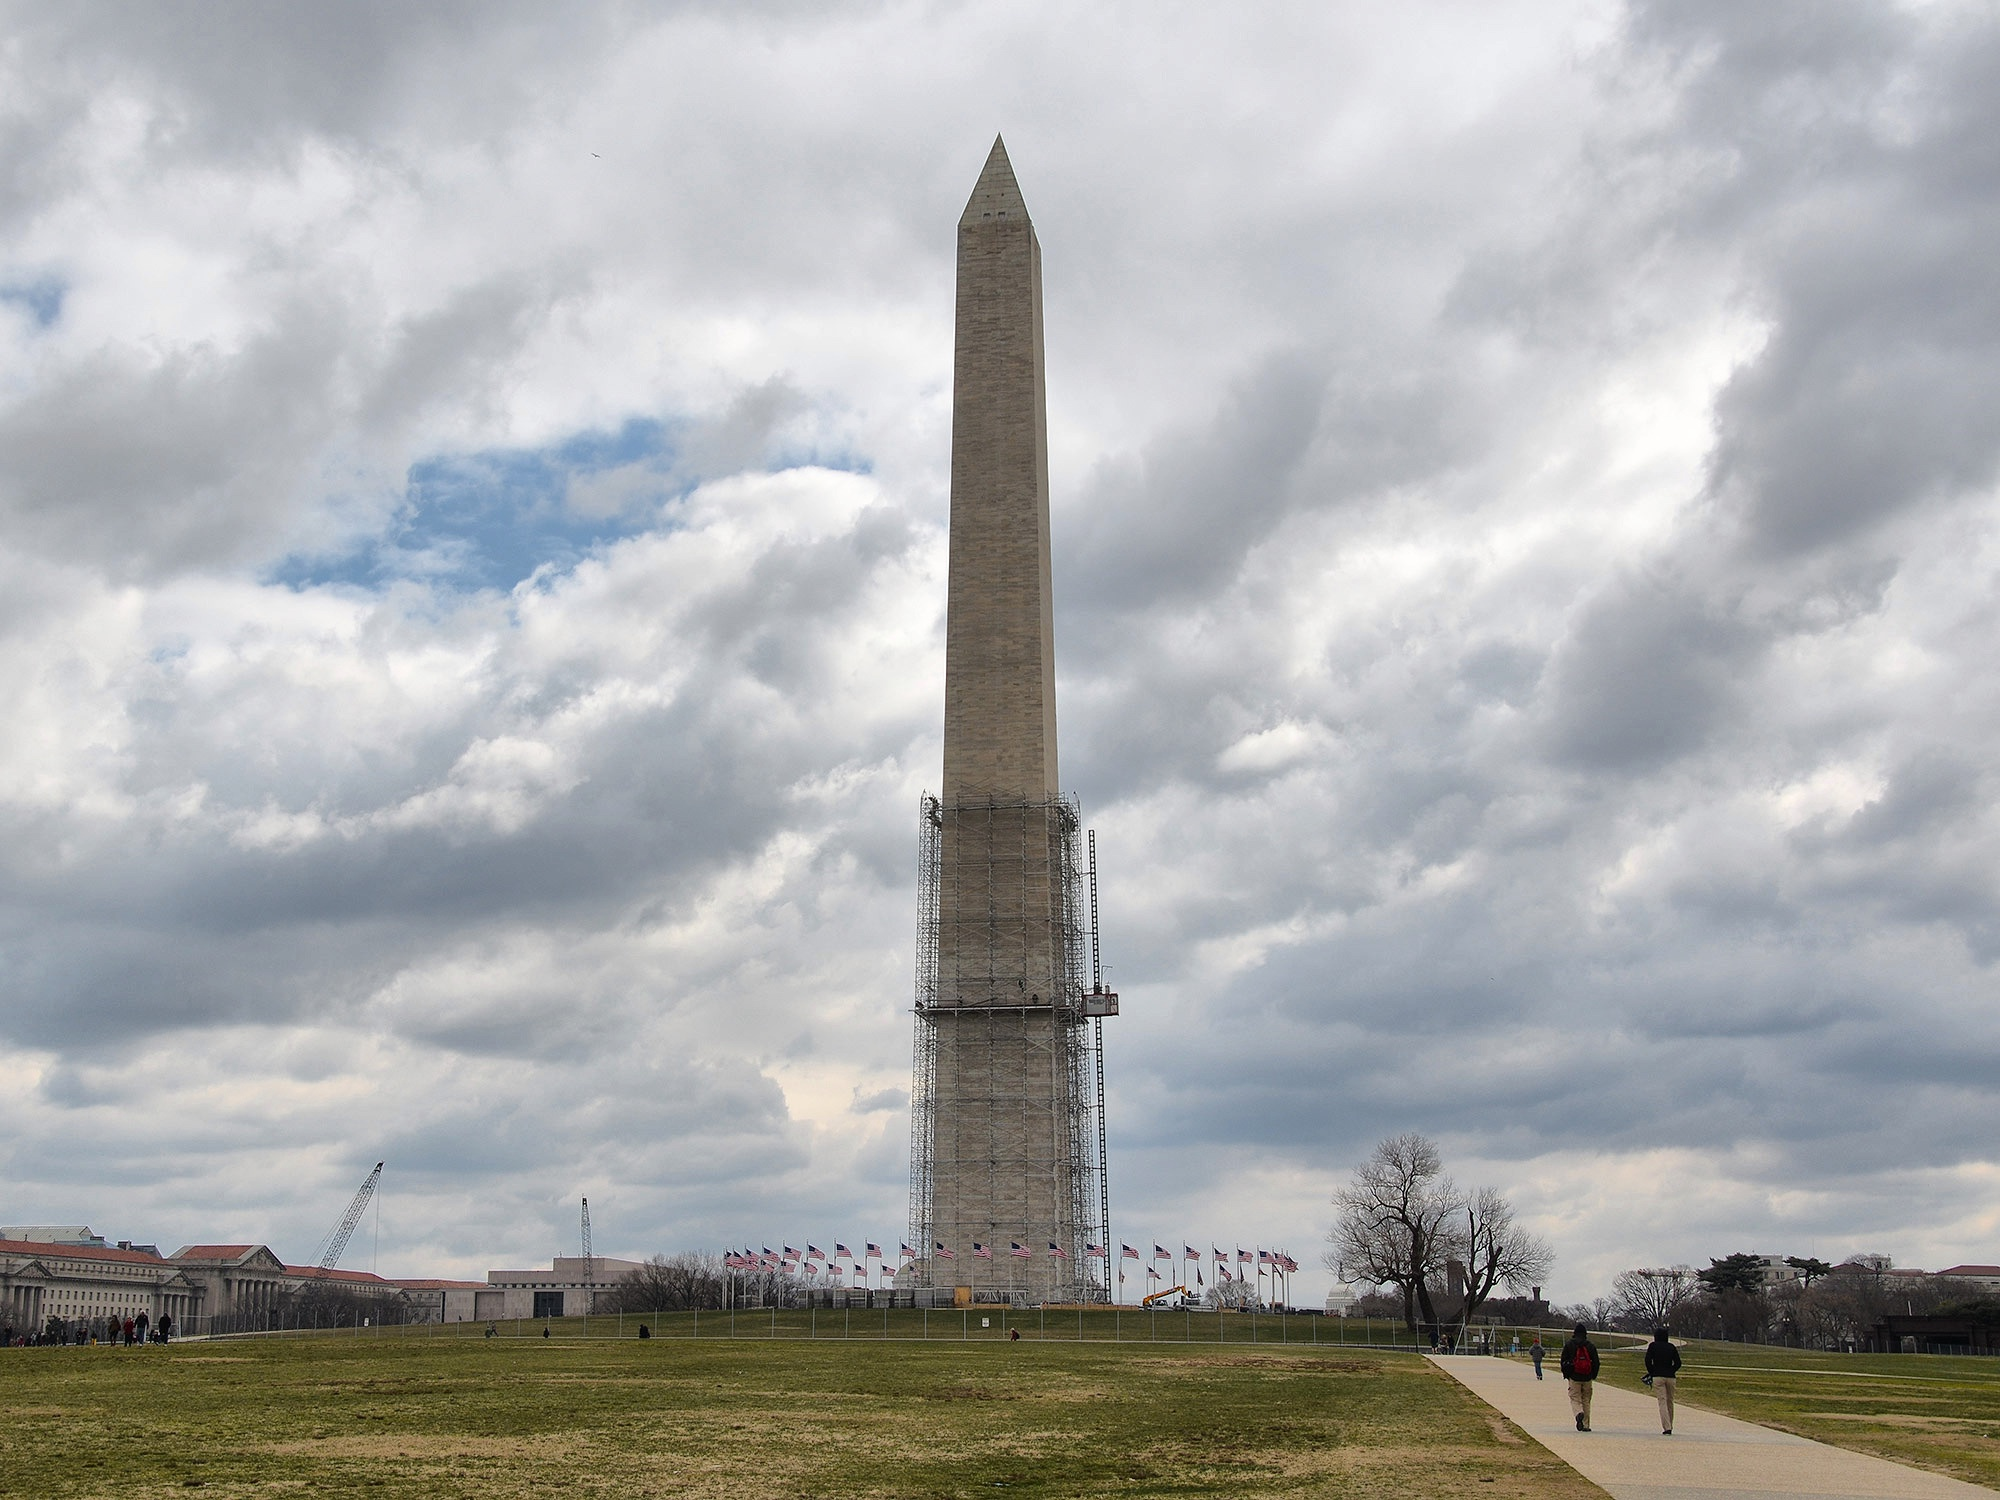 Washington Monument, Washington, USA